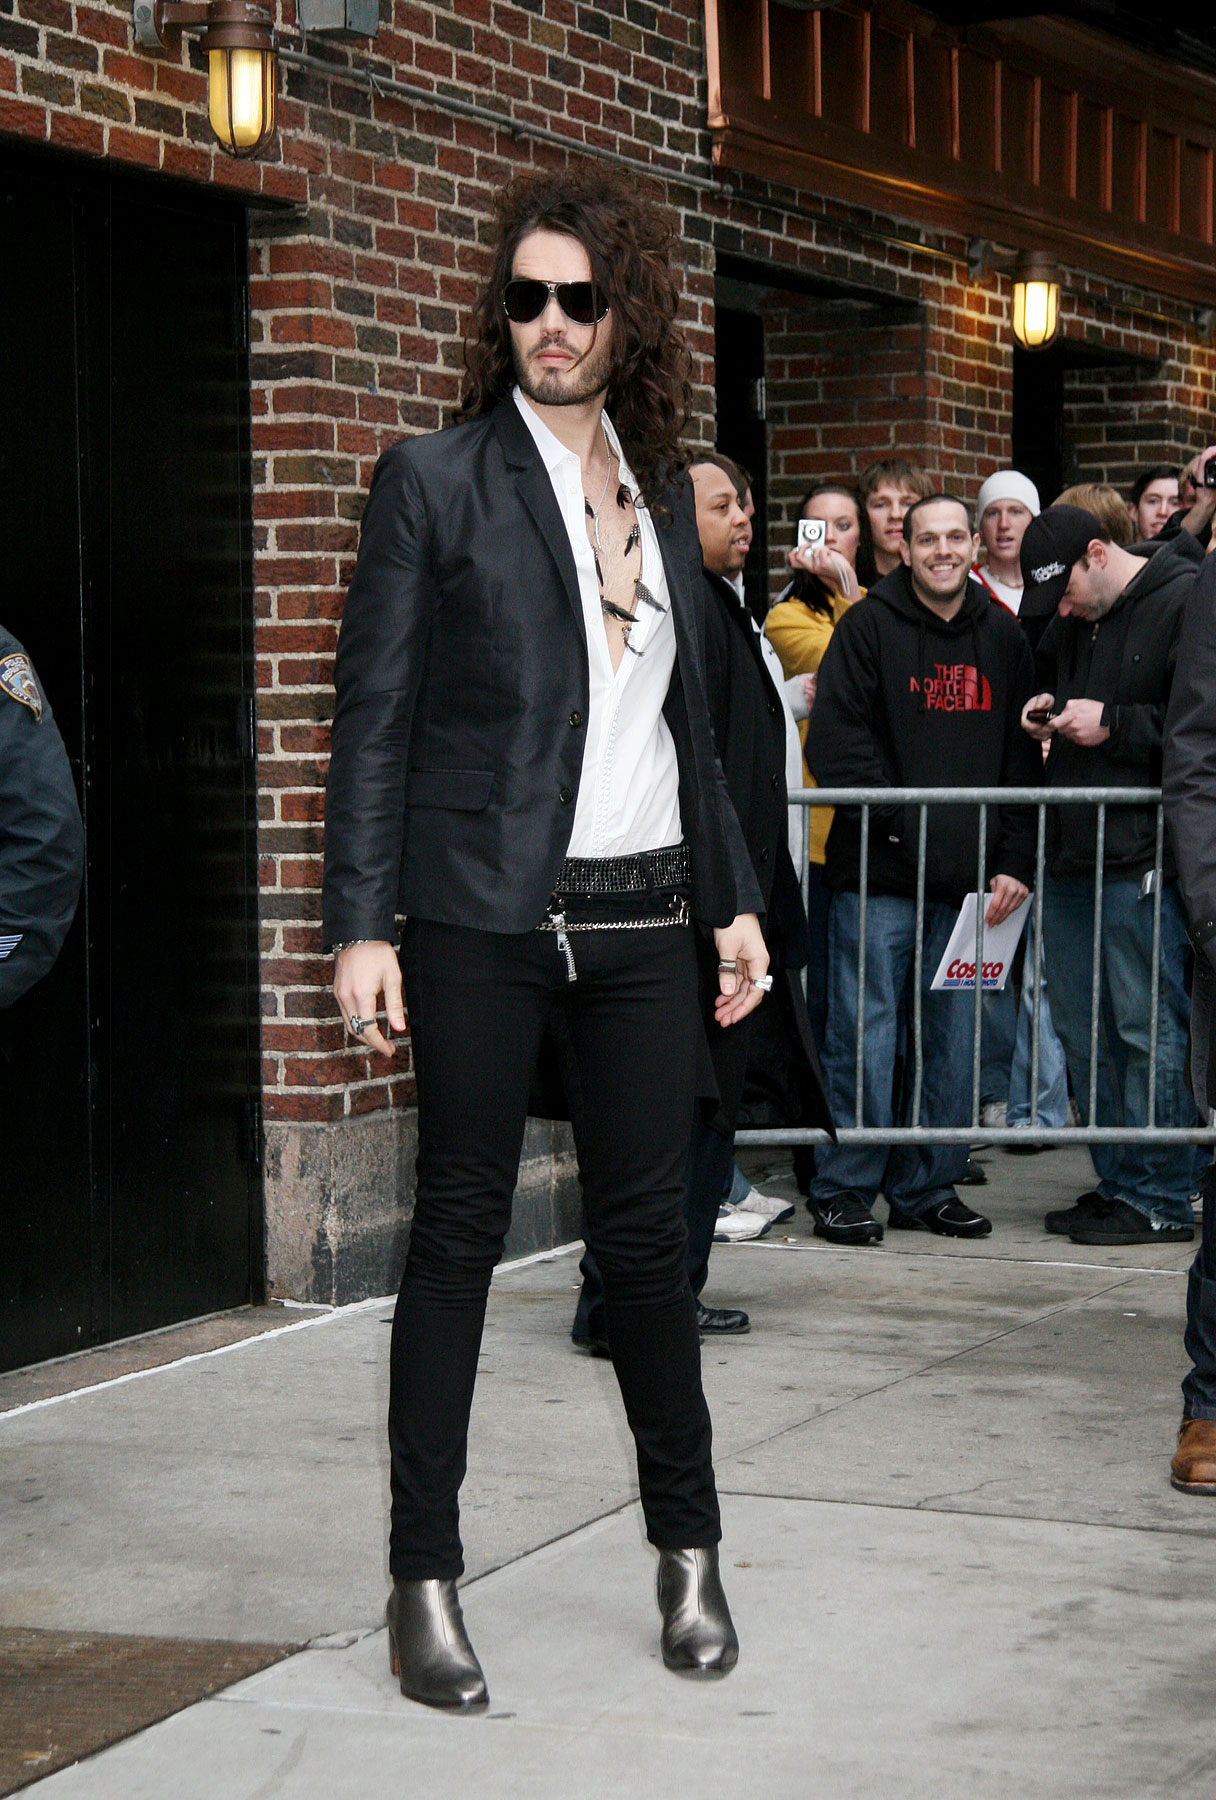 Russell Brand: Booting up for 'Pirates' Sequel?